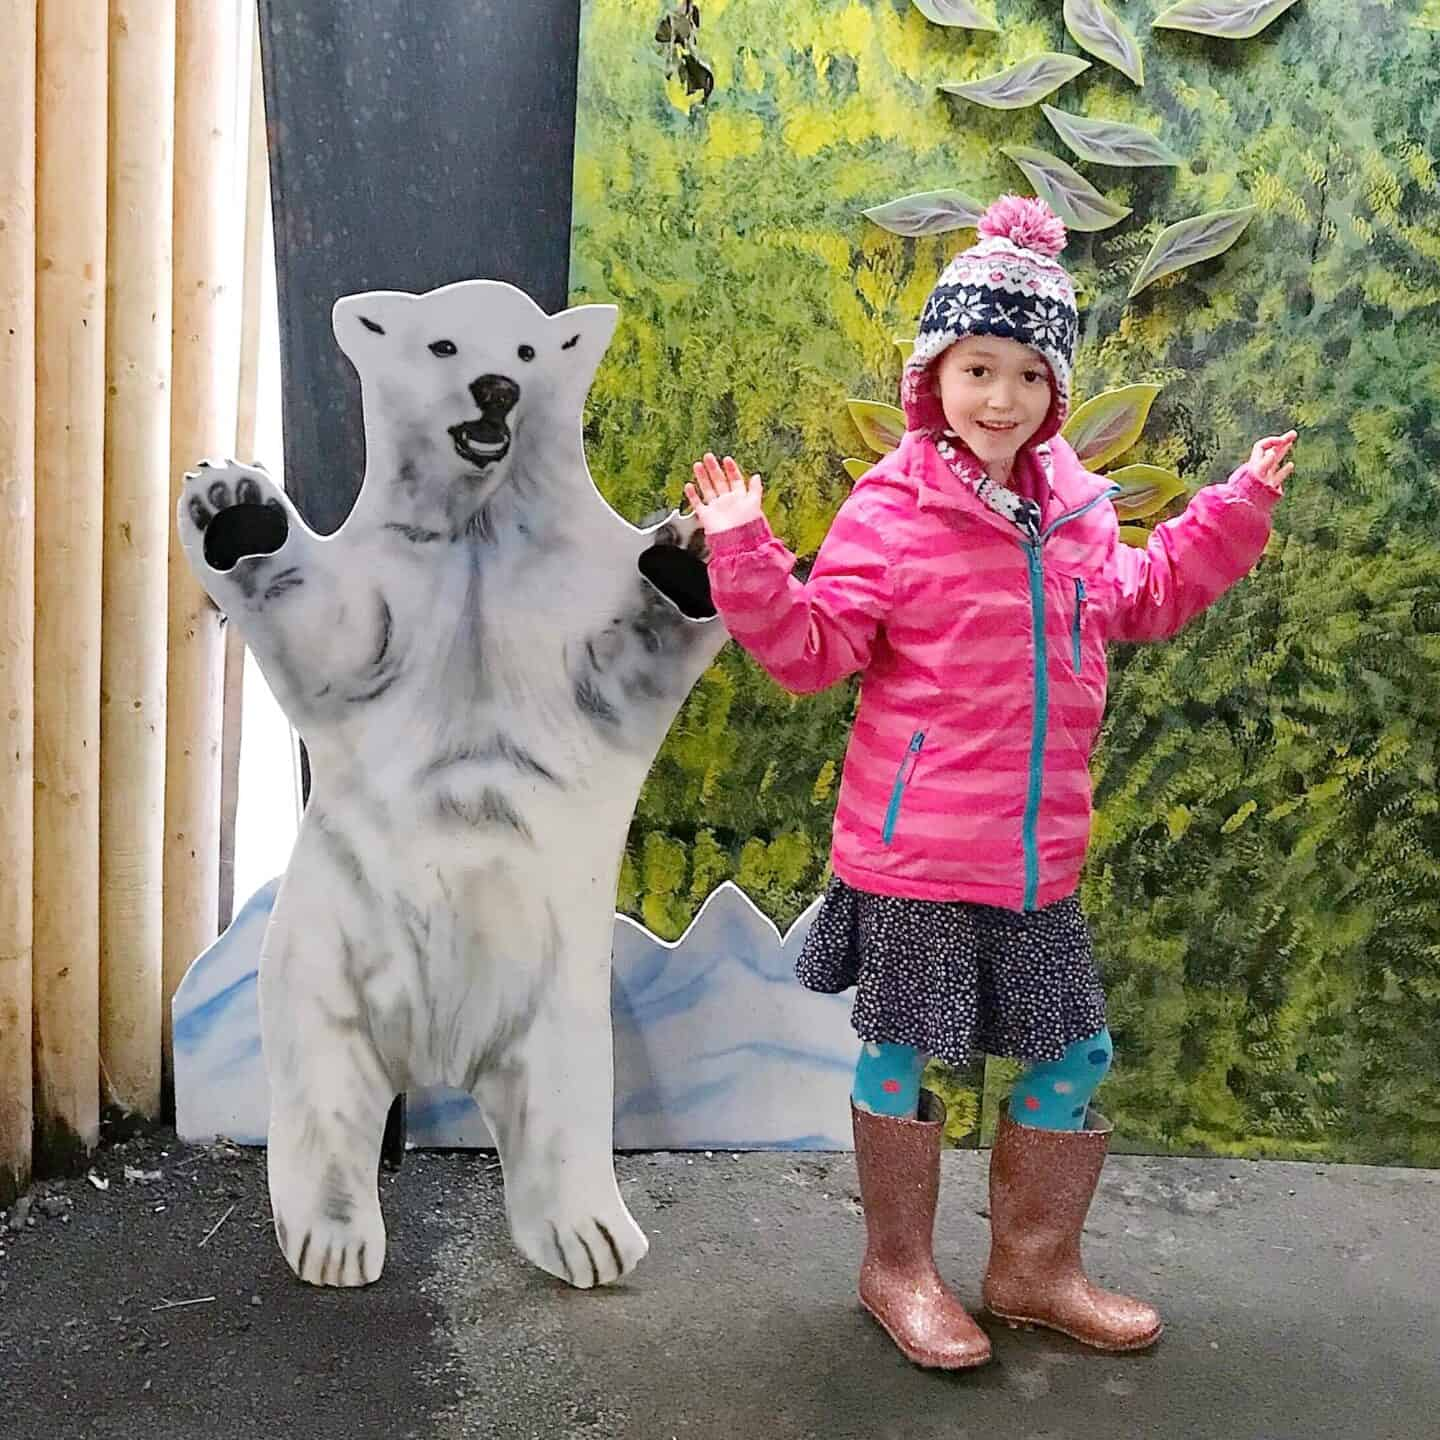 Dancing with a bear